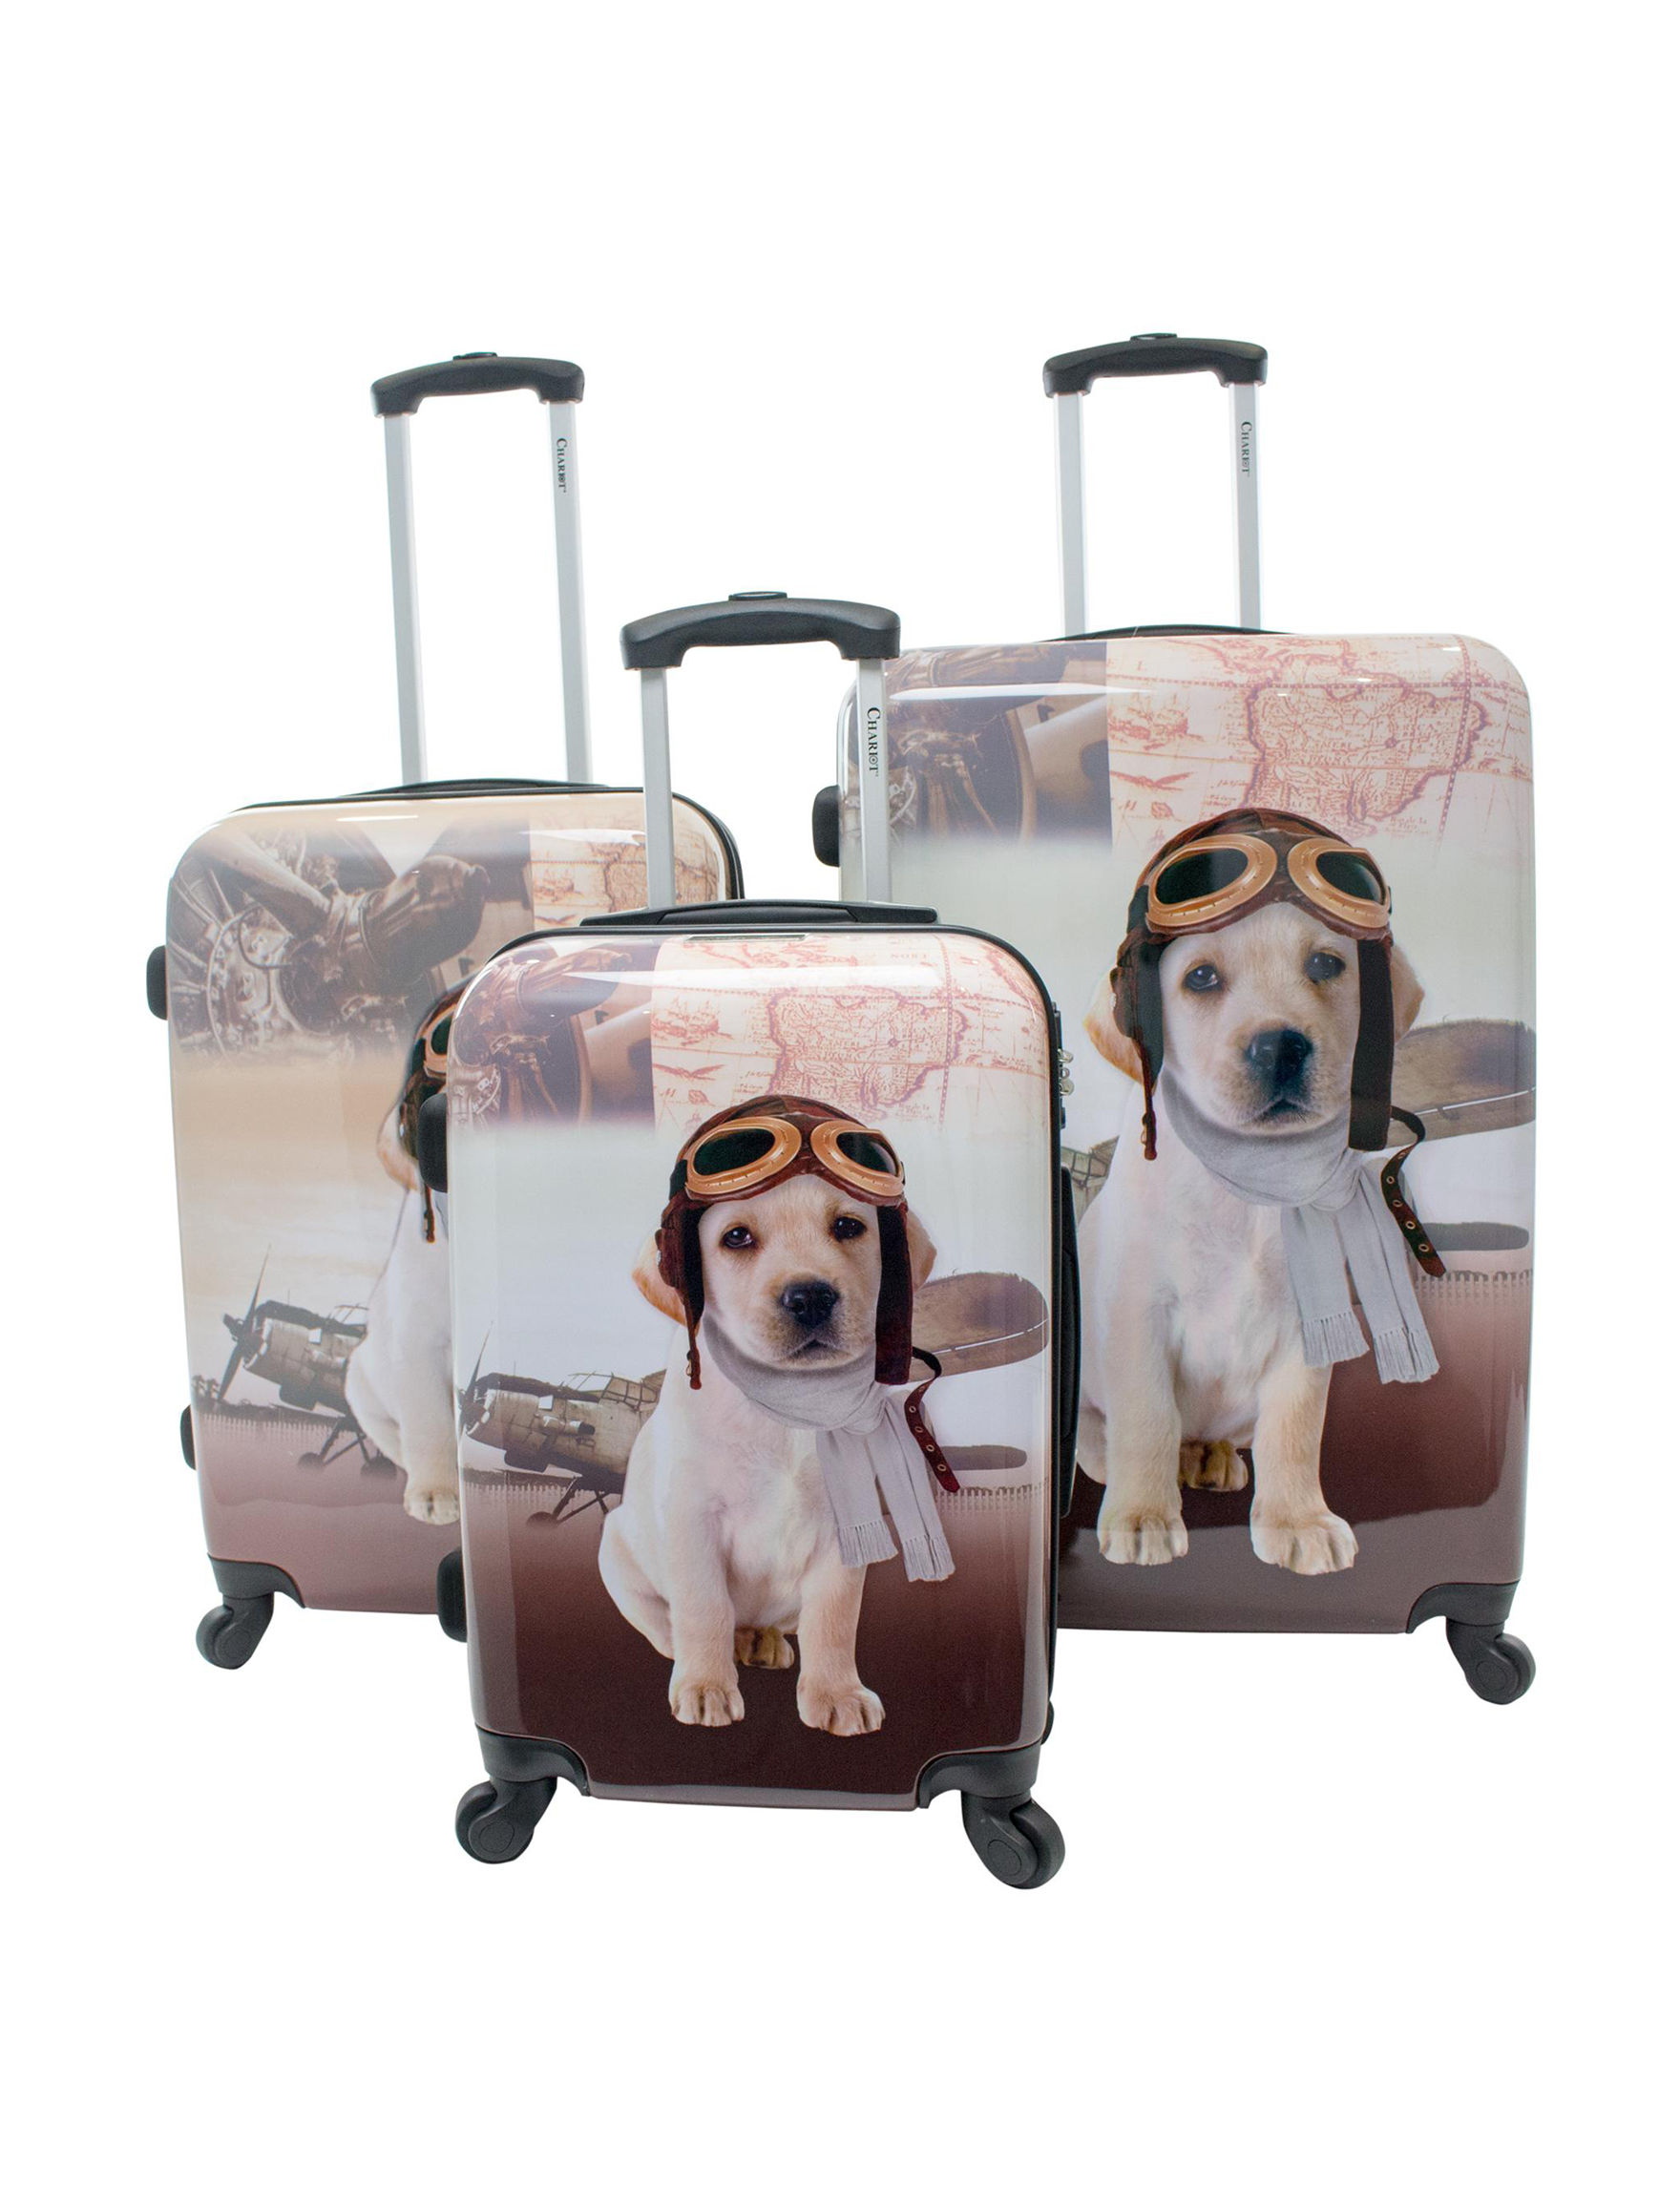 Chariot Travelware Beige Luggage Sets